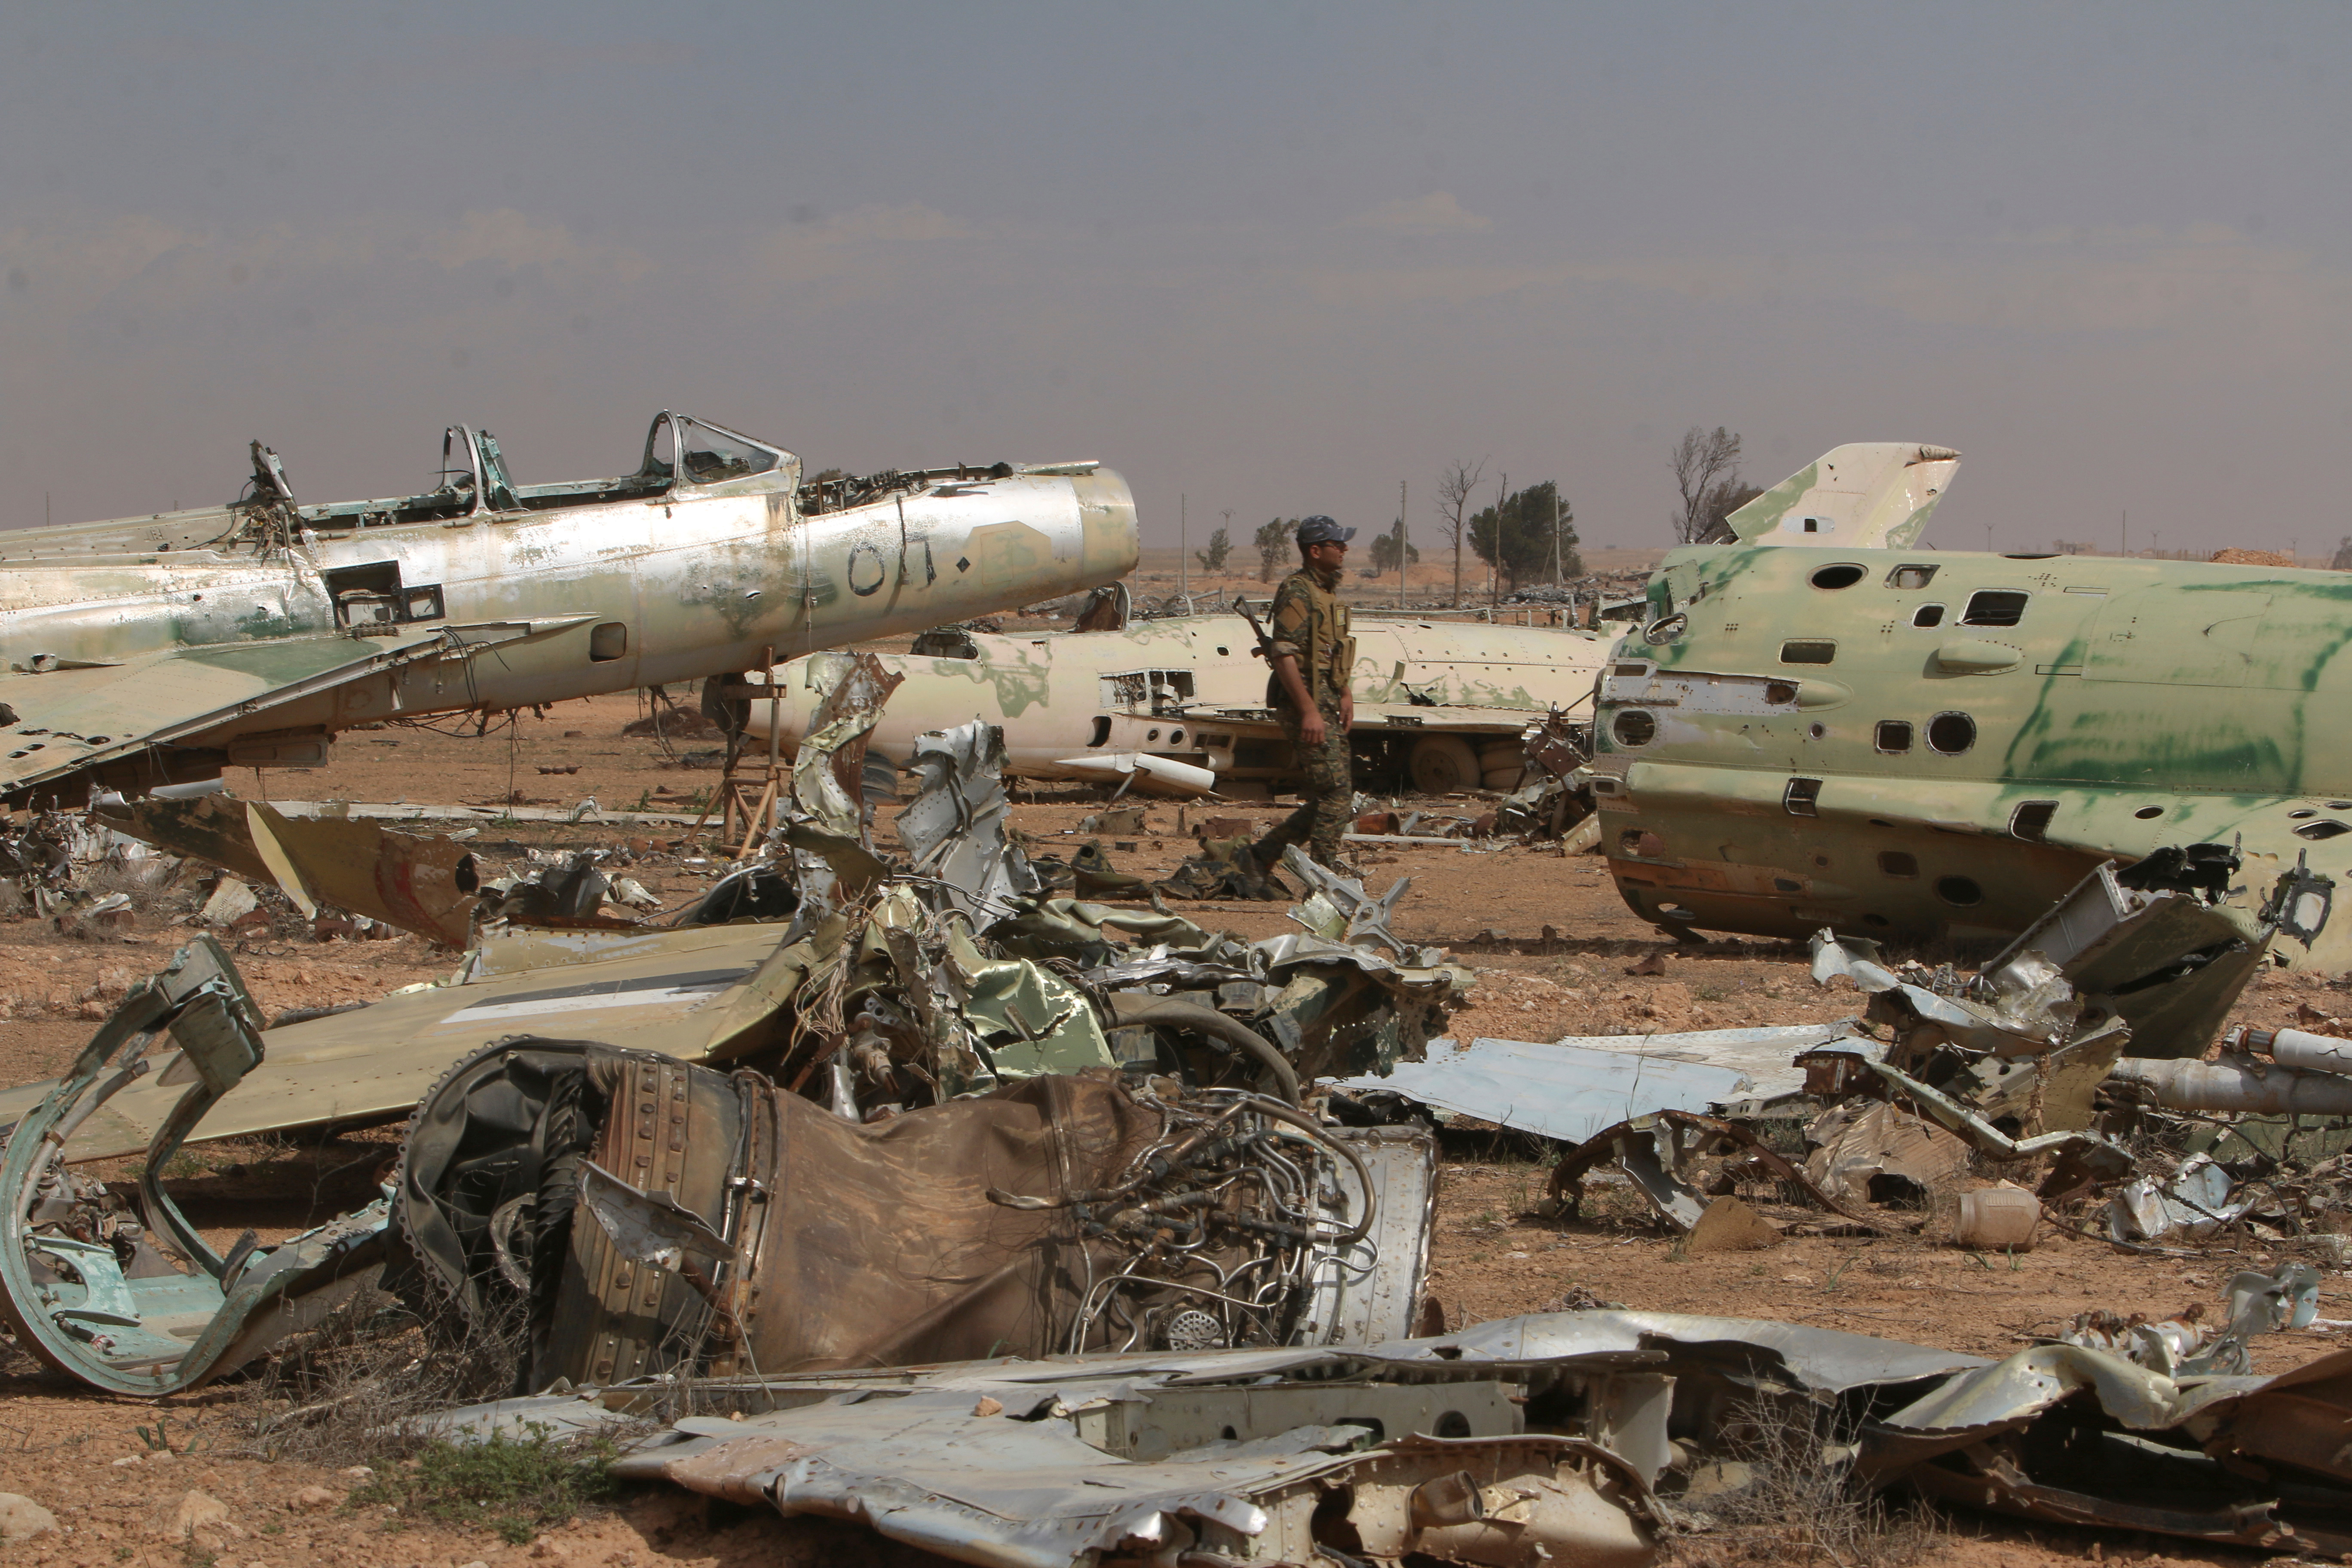 A Syrian Democratic Forces (SDF) fighter walks near destroyed airplane parts inside Tabqa military airport after taking control of it from Islamic State fighters, west of Raqqa city, Syria April 9, 2017.